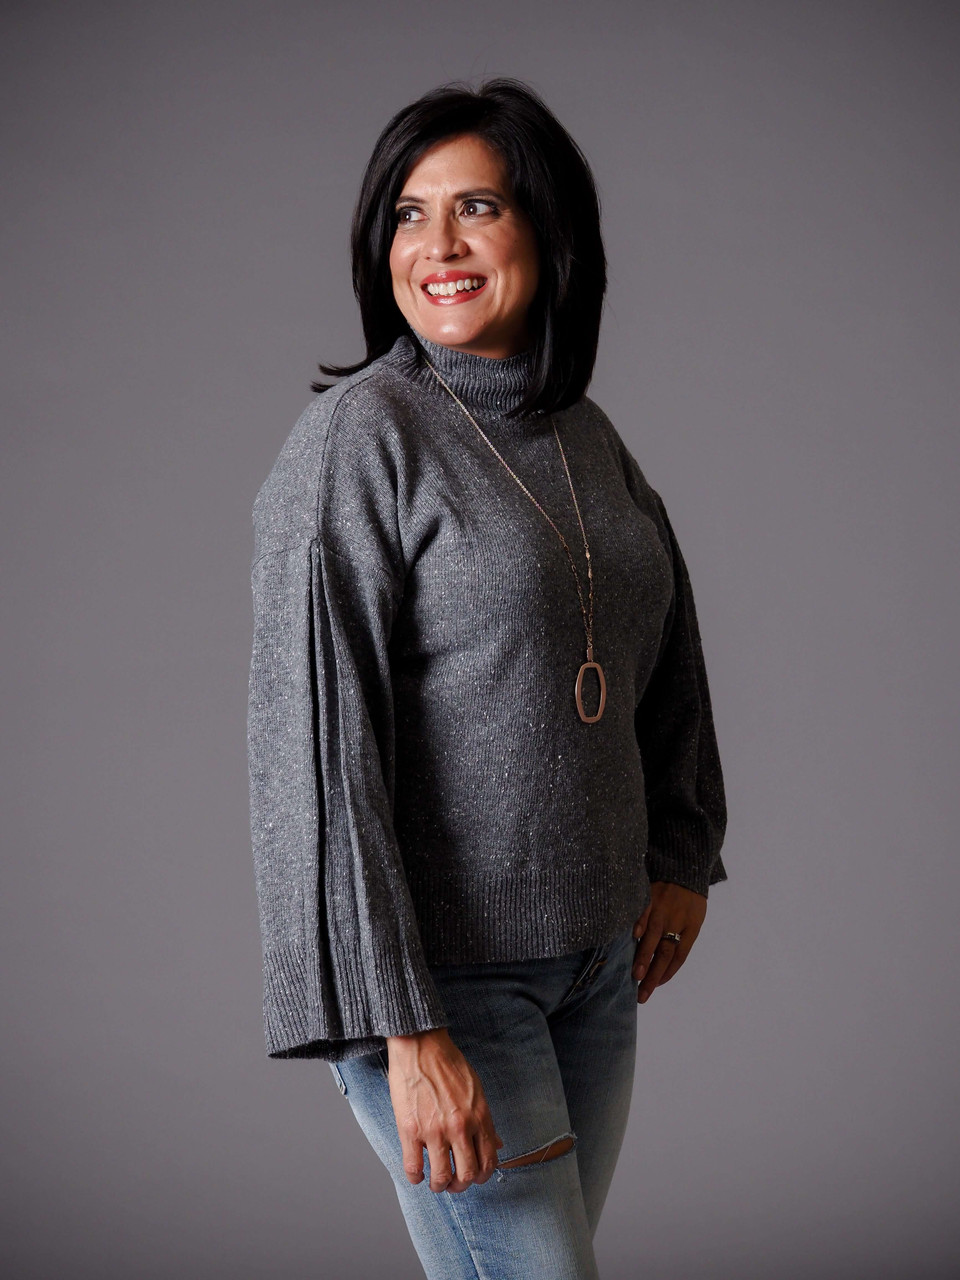 gray mock turtleneck knit confetti sweater